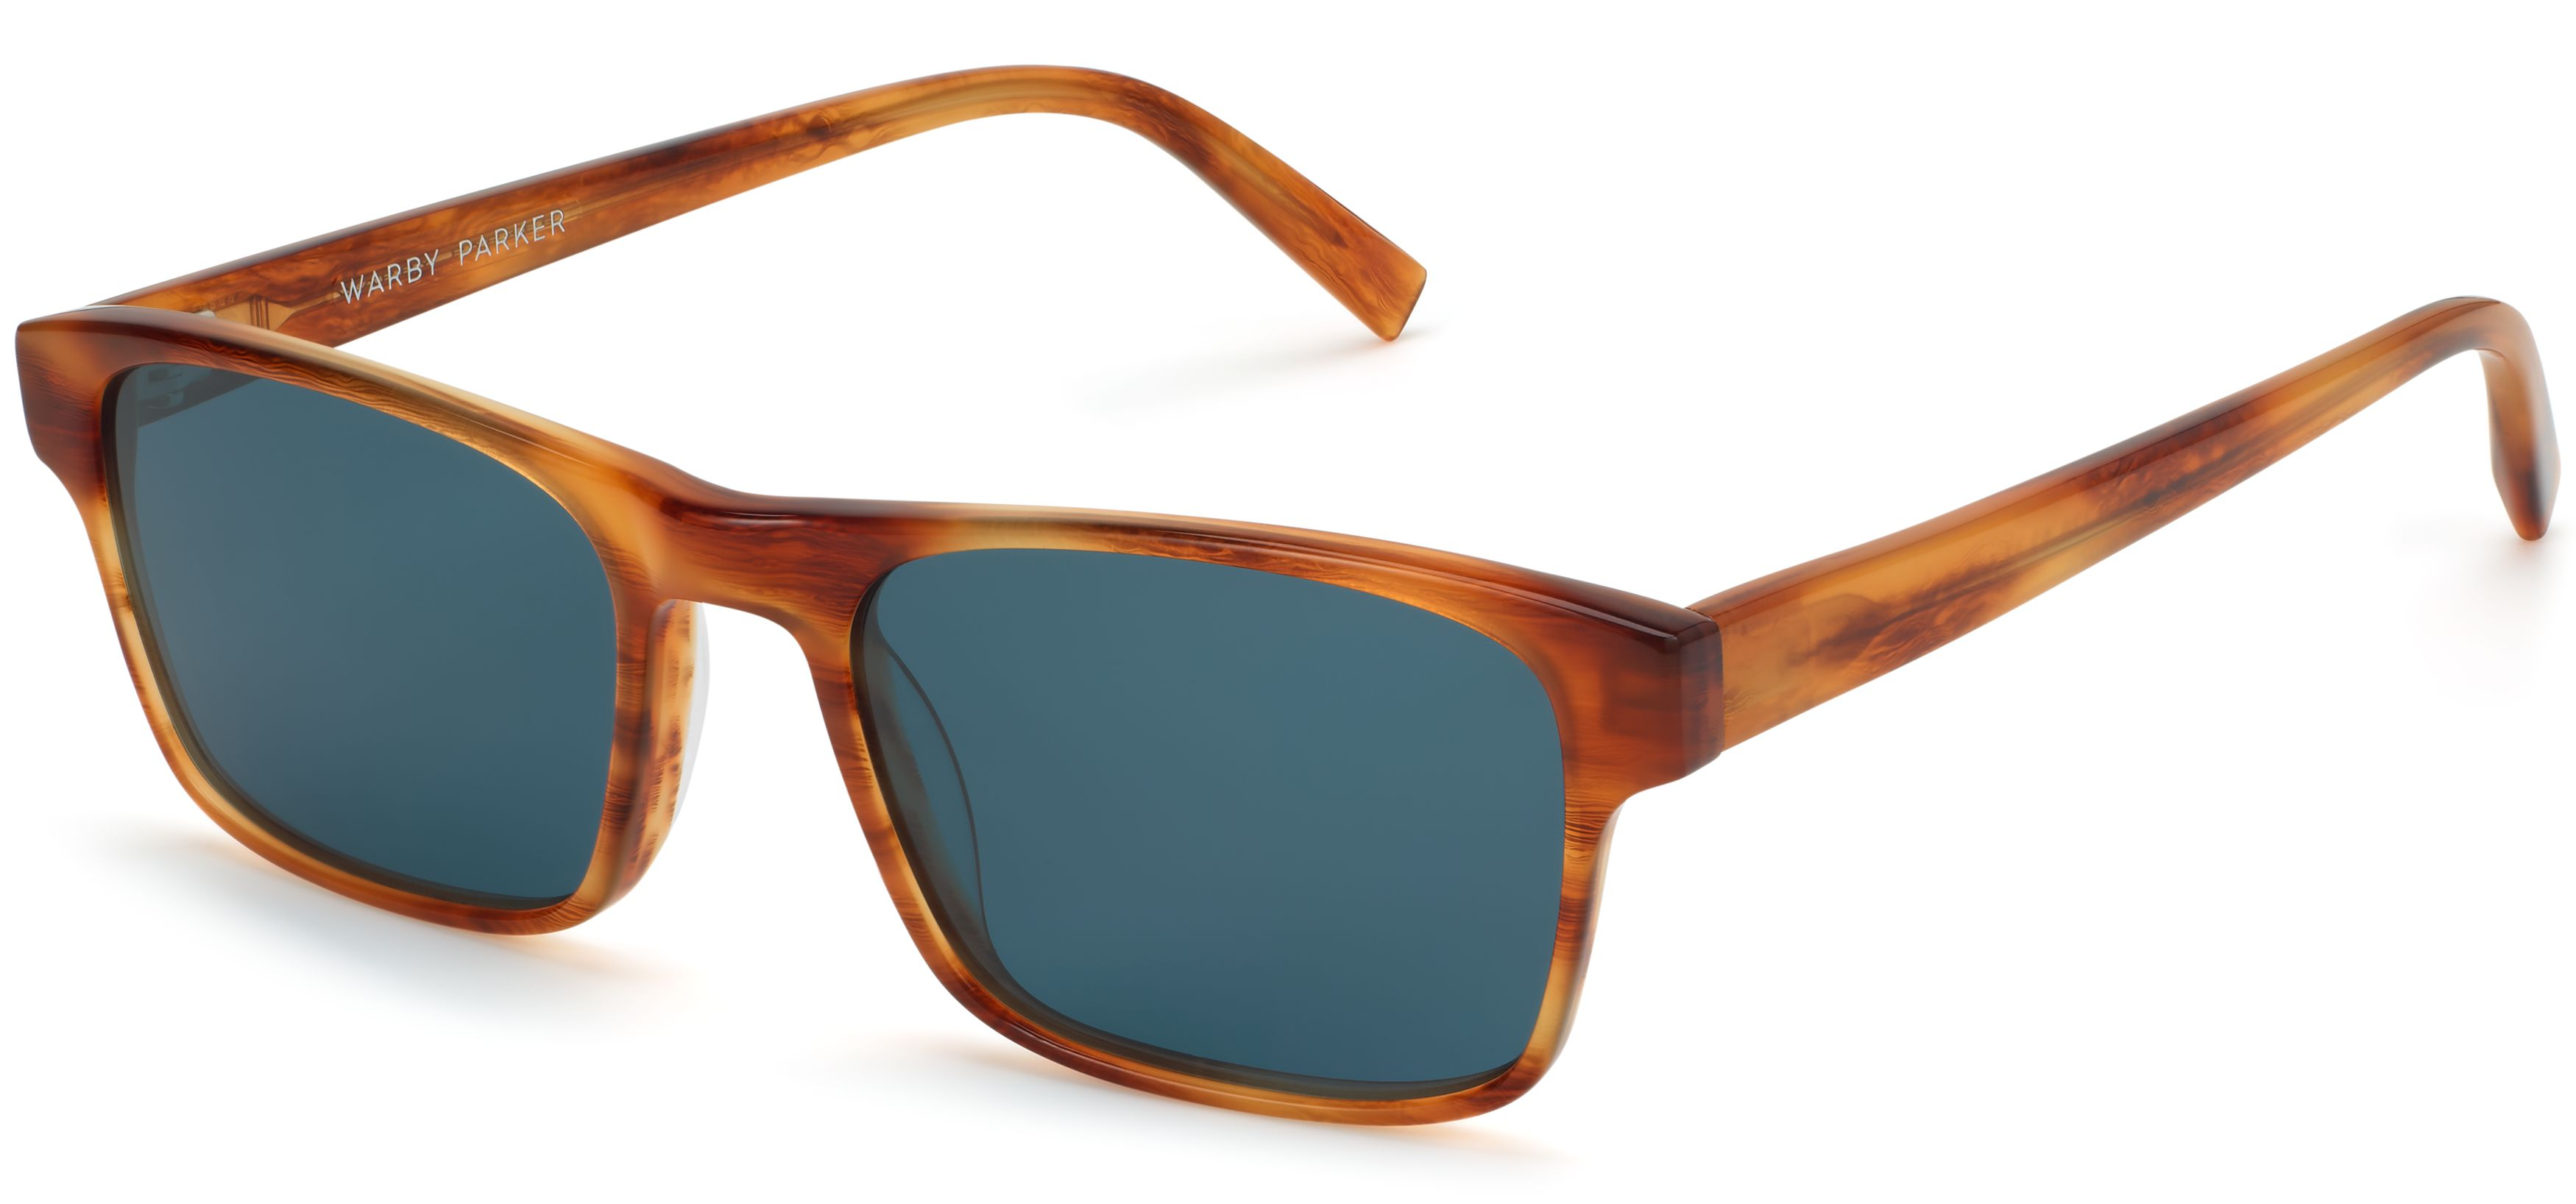 warby parker perkins english oak